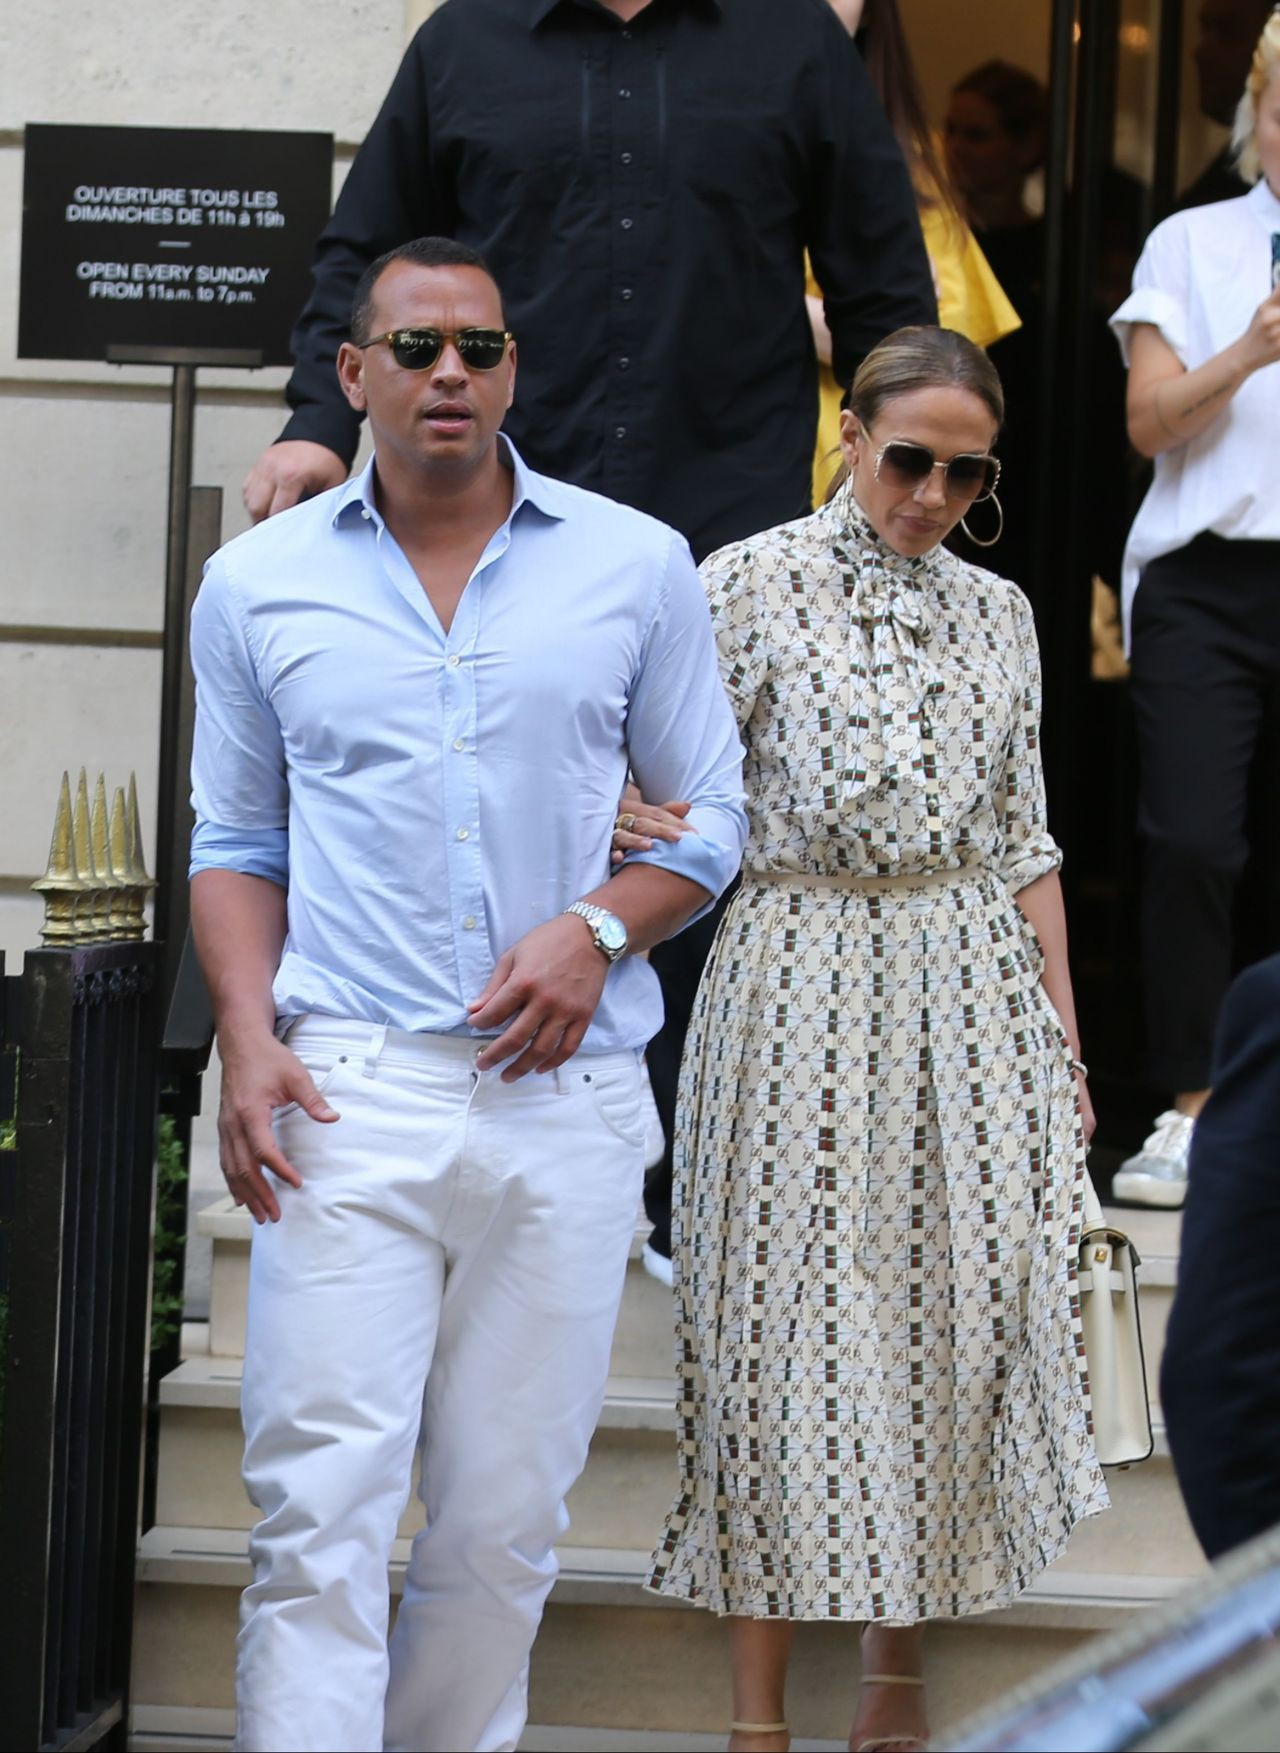 jennifer-lopez-and-alex-rodriguez-visit-the-louvre-in-paris-06-17-2017-6-1